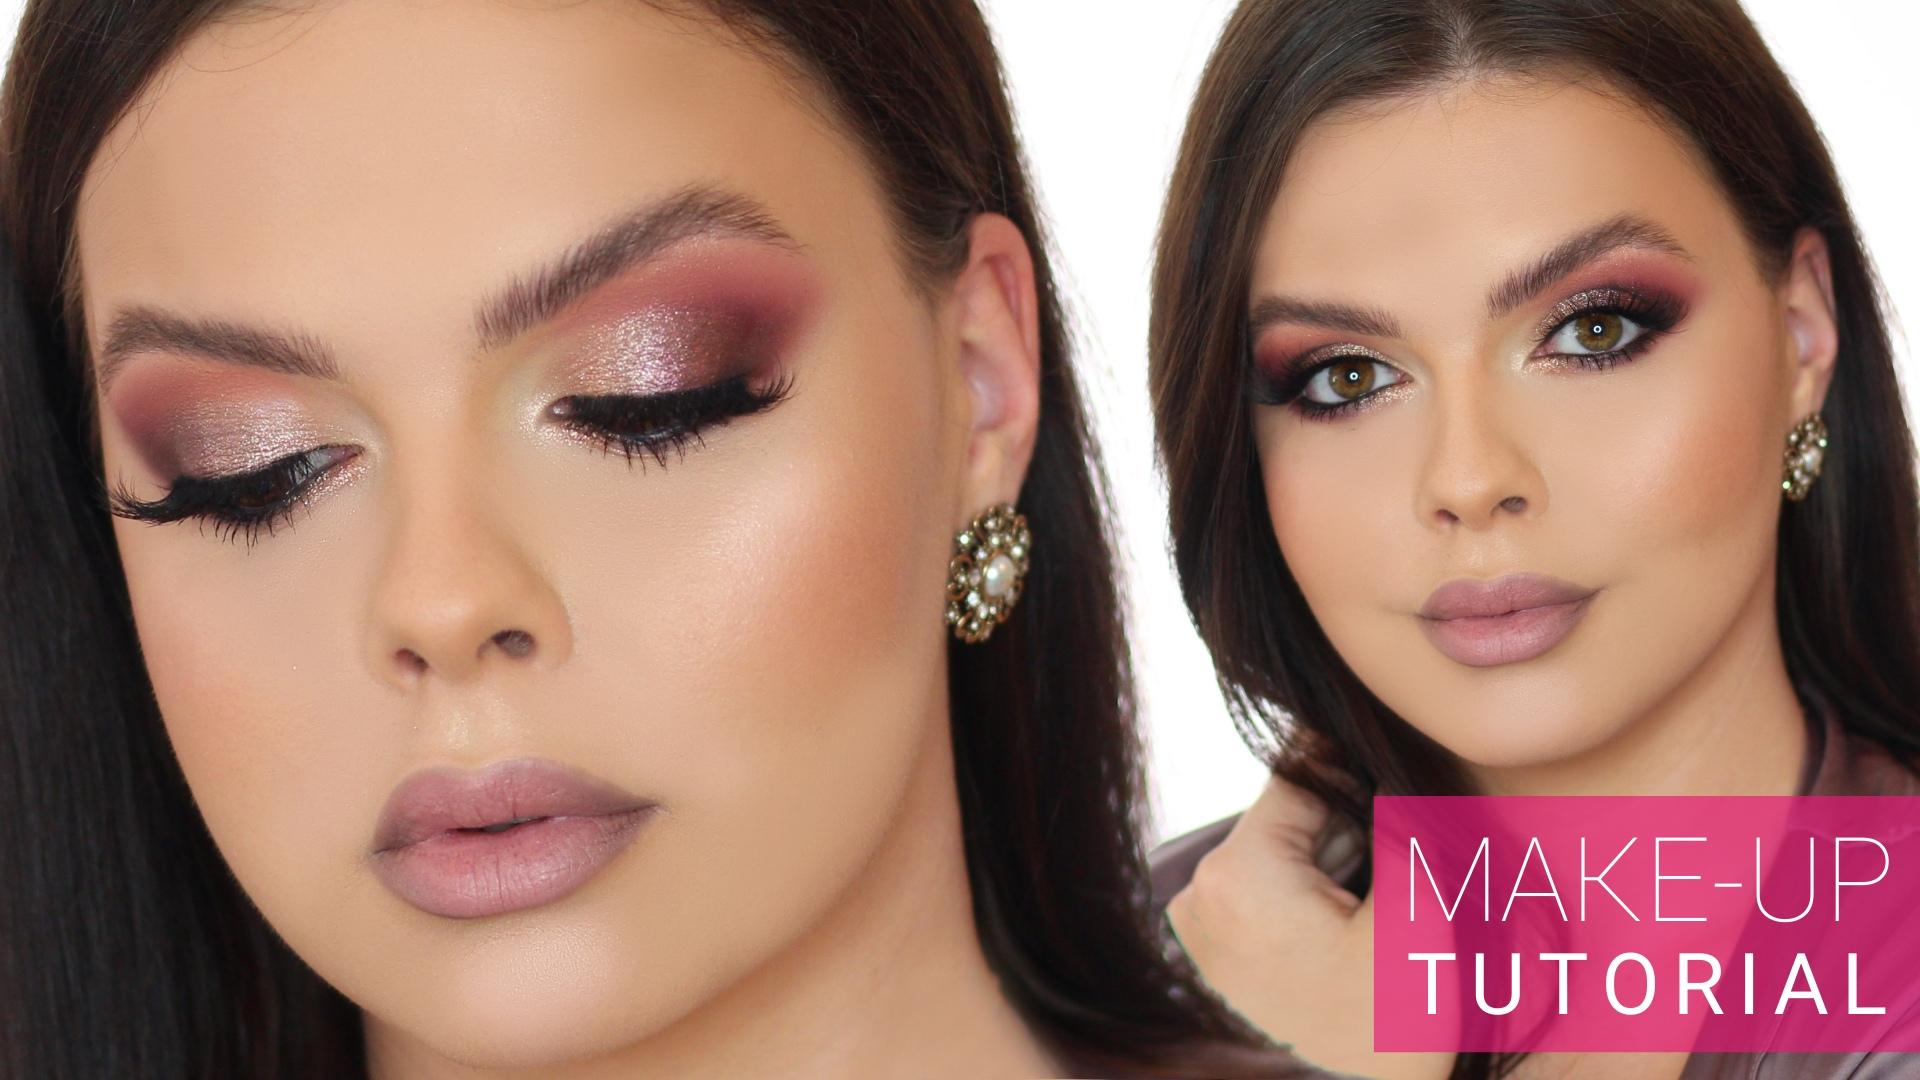 Full Face Glam | Make-up Tutorial